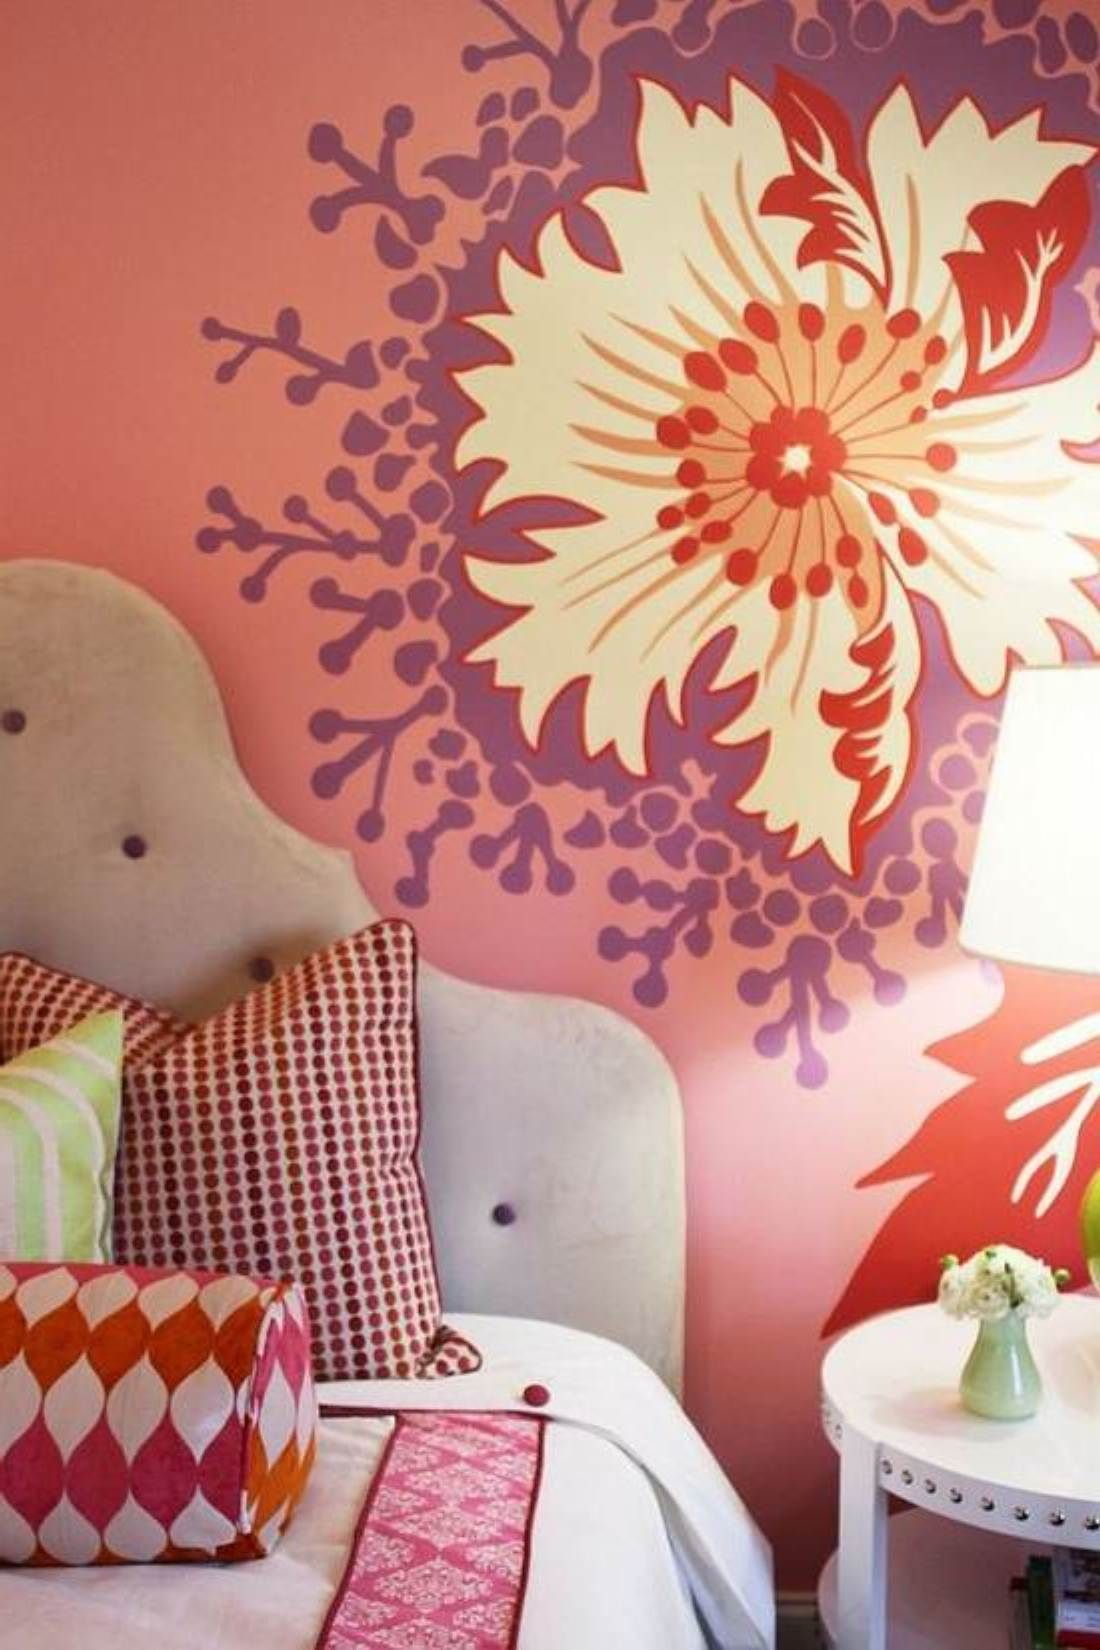 Creative Paint Ideas for Girls Bedroom | Evie\'s bedroom | Pinterest ...